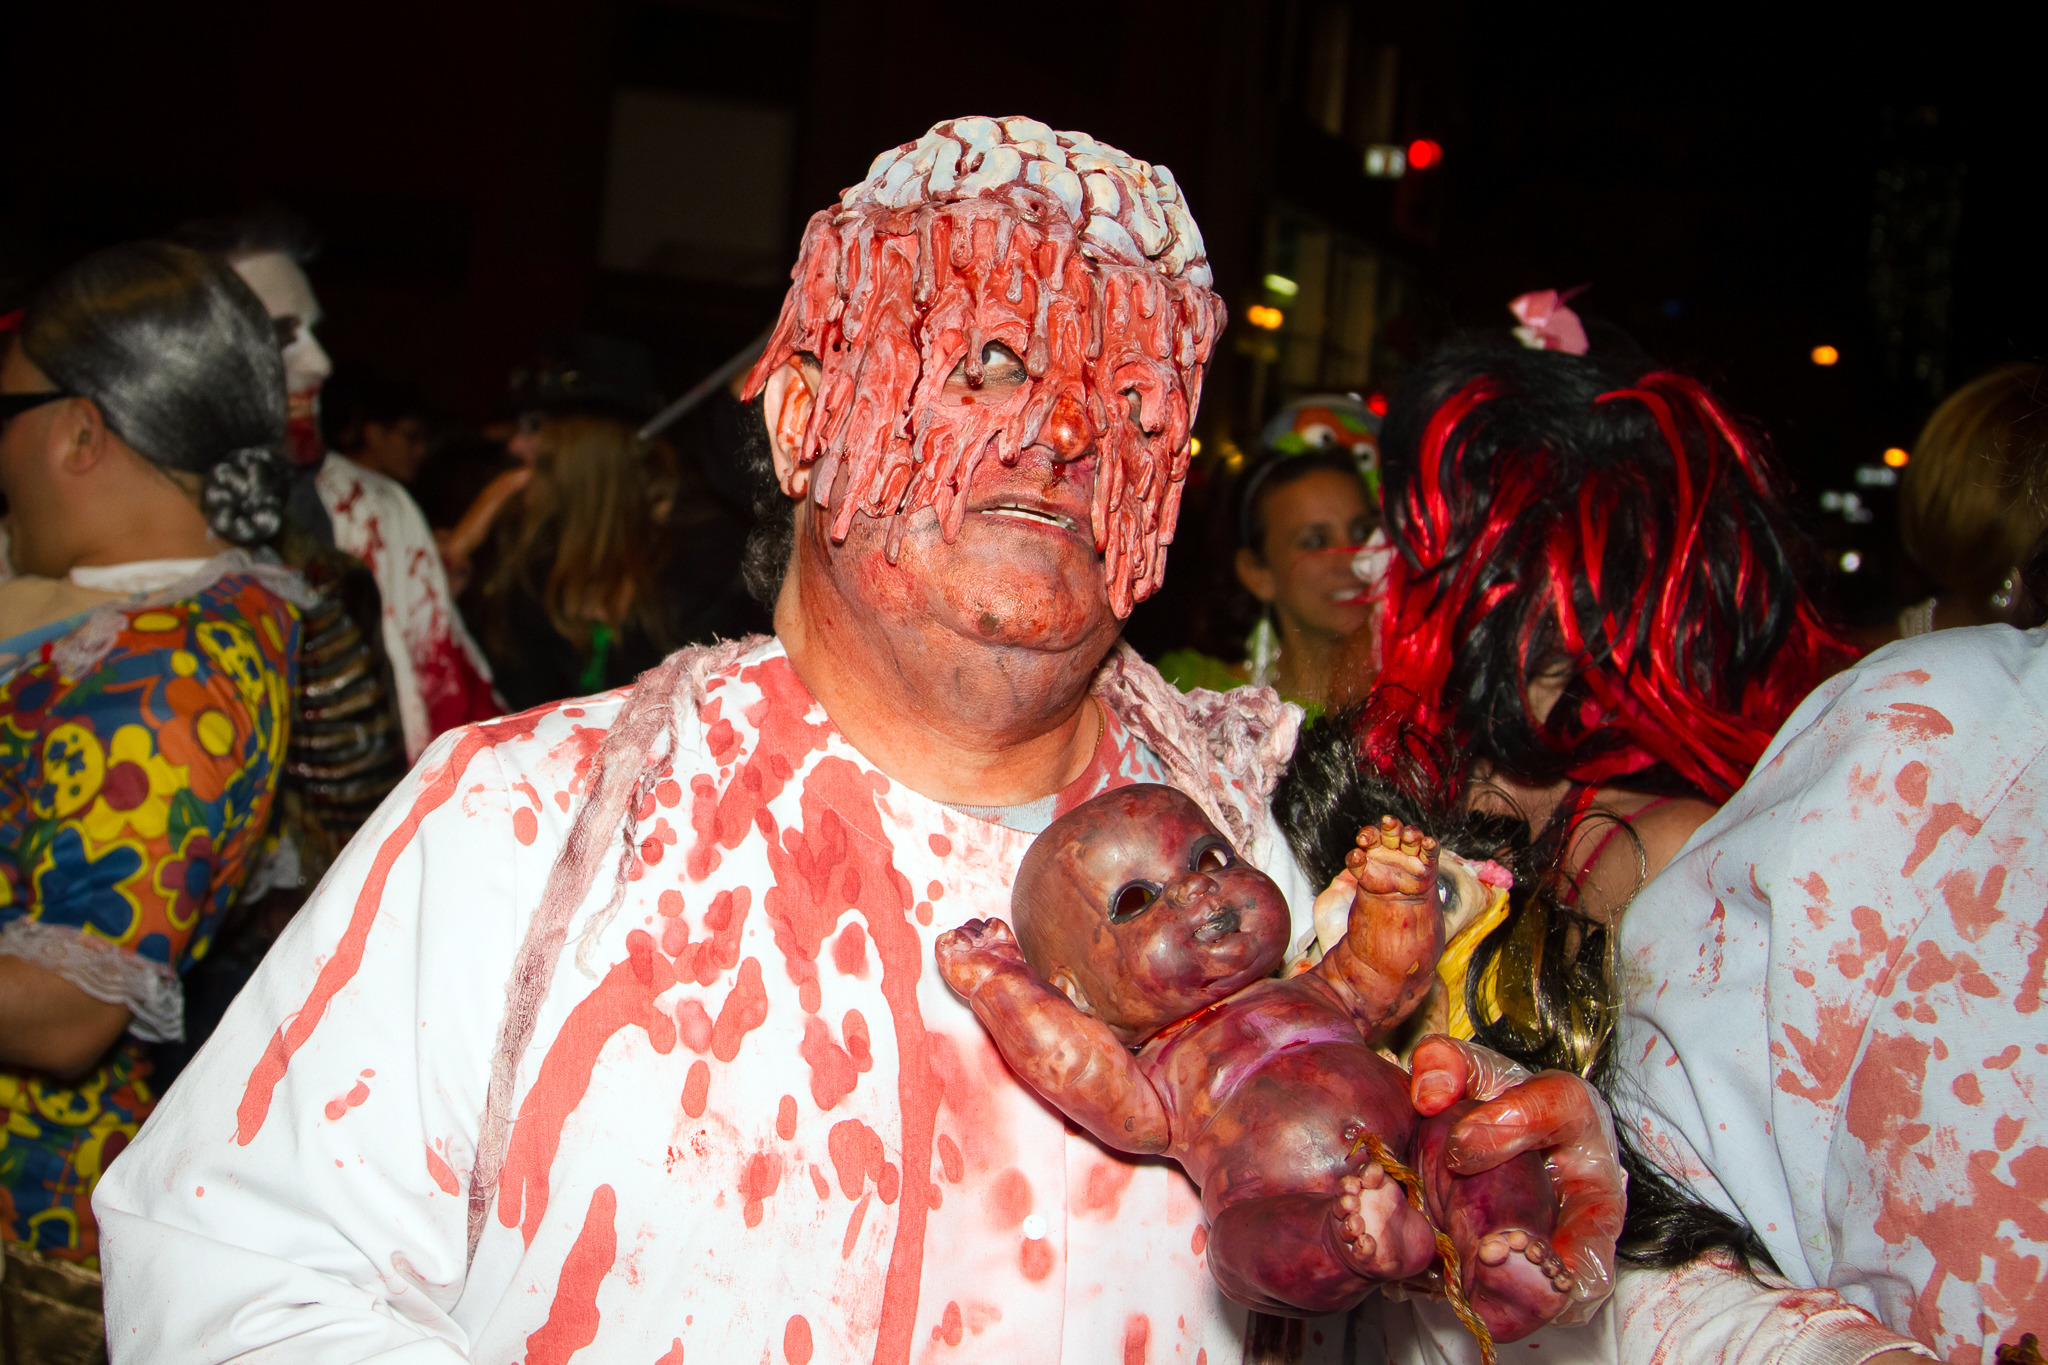 Check out the scariest costumes of the Village Halloween Parade